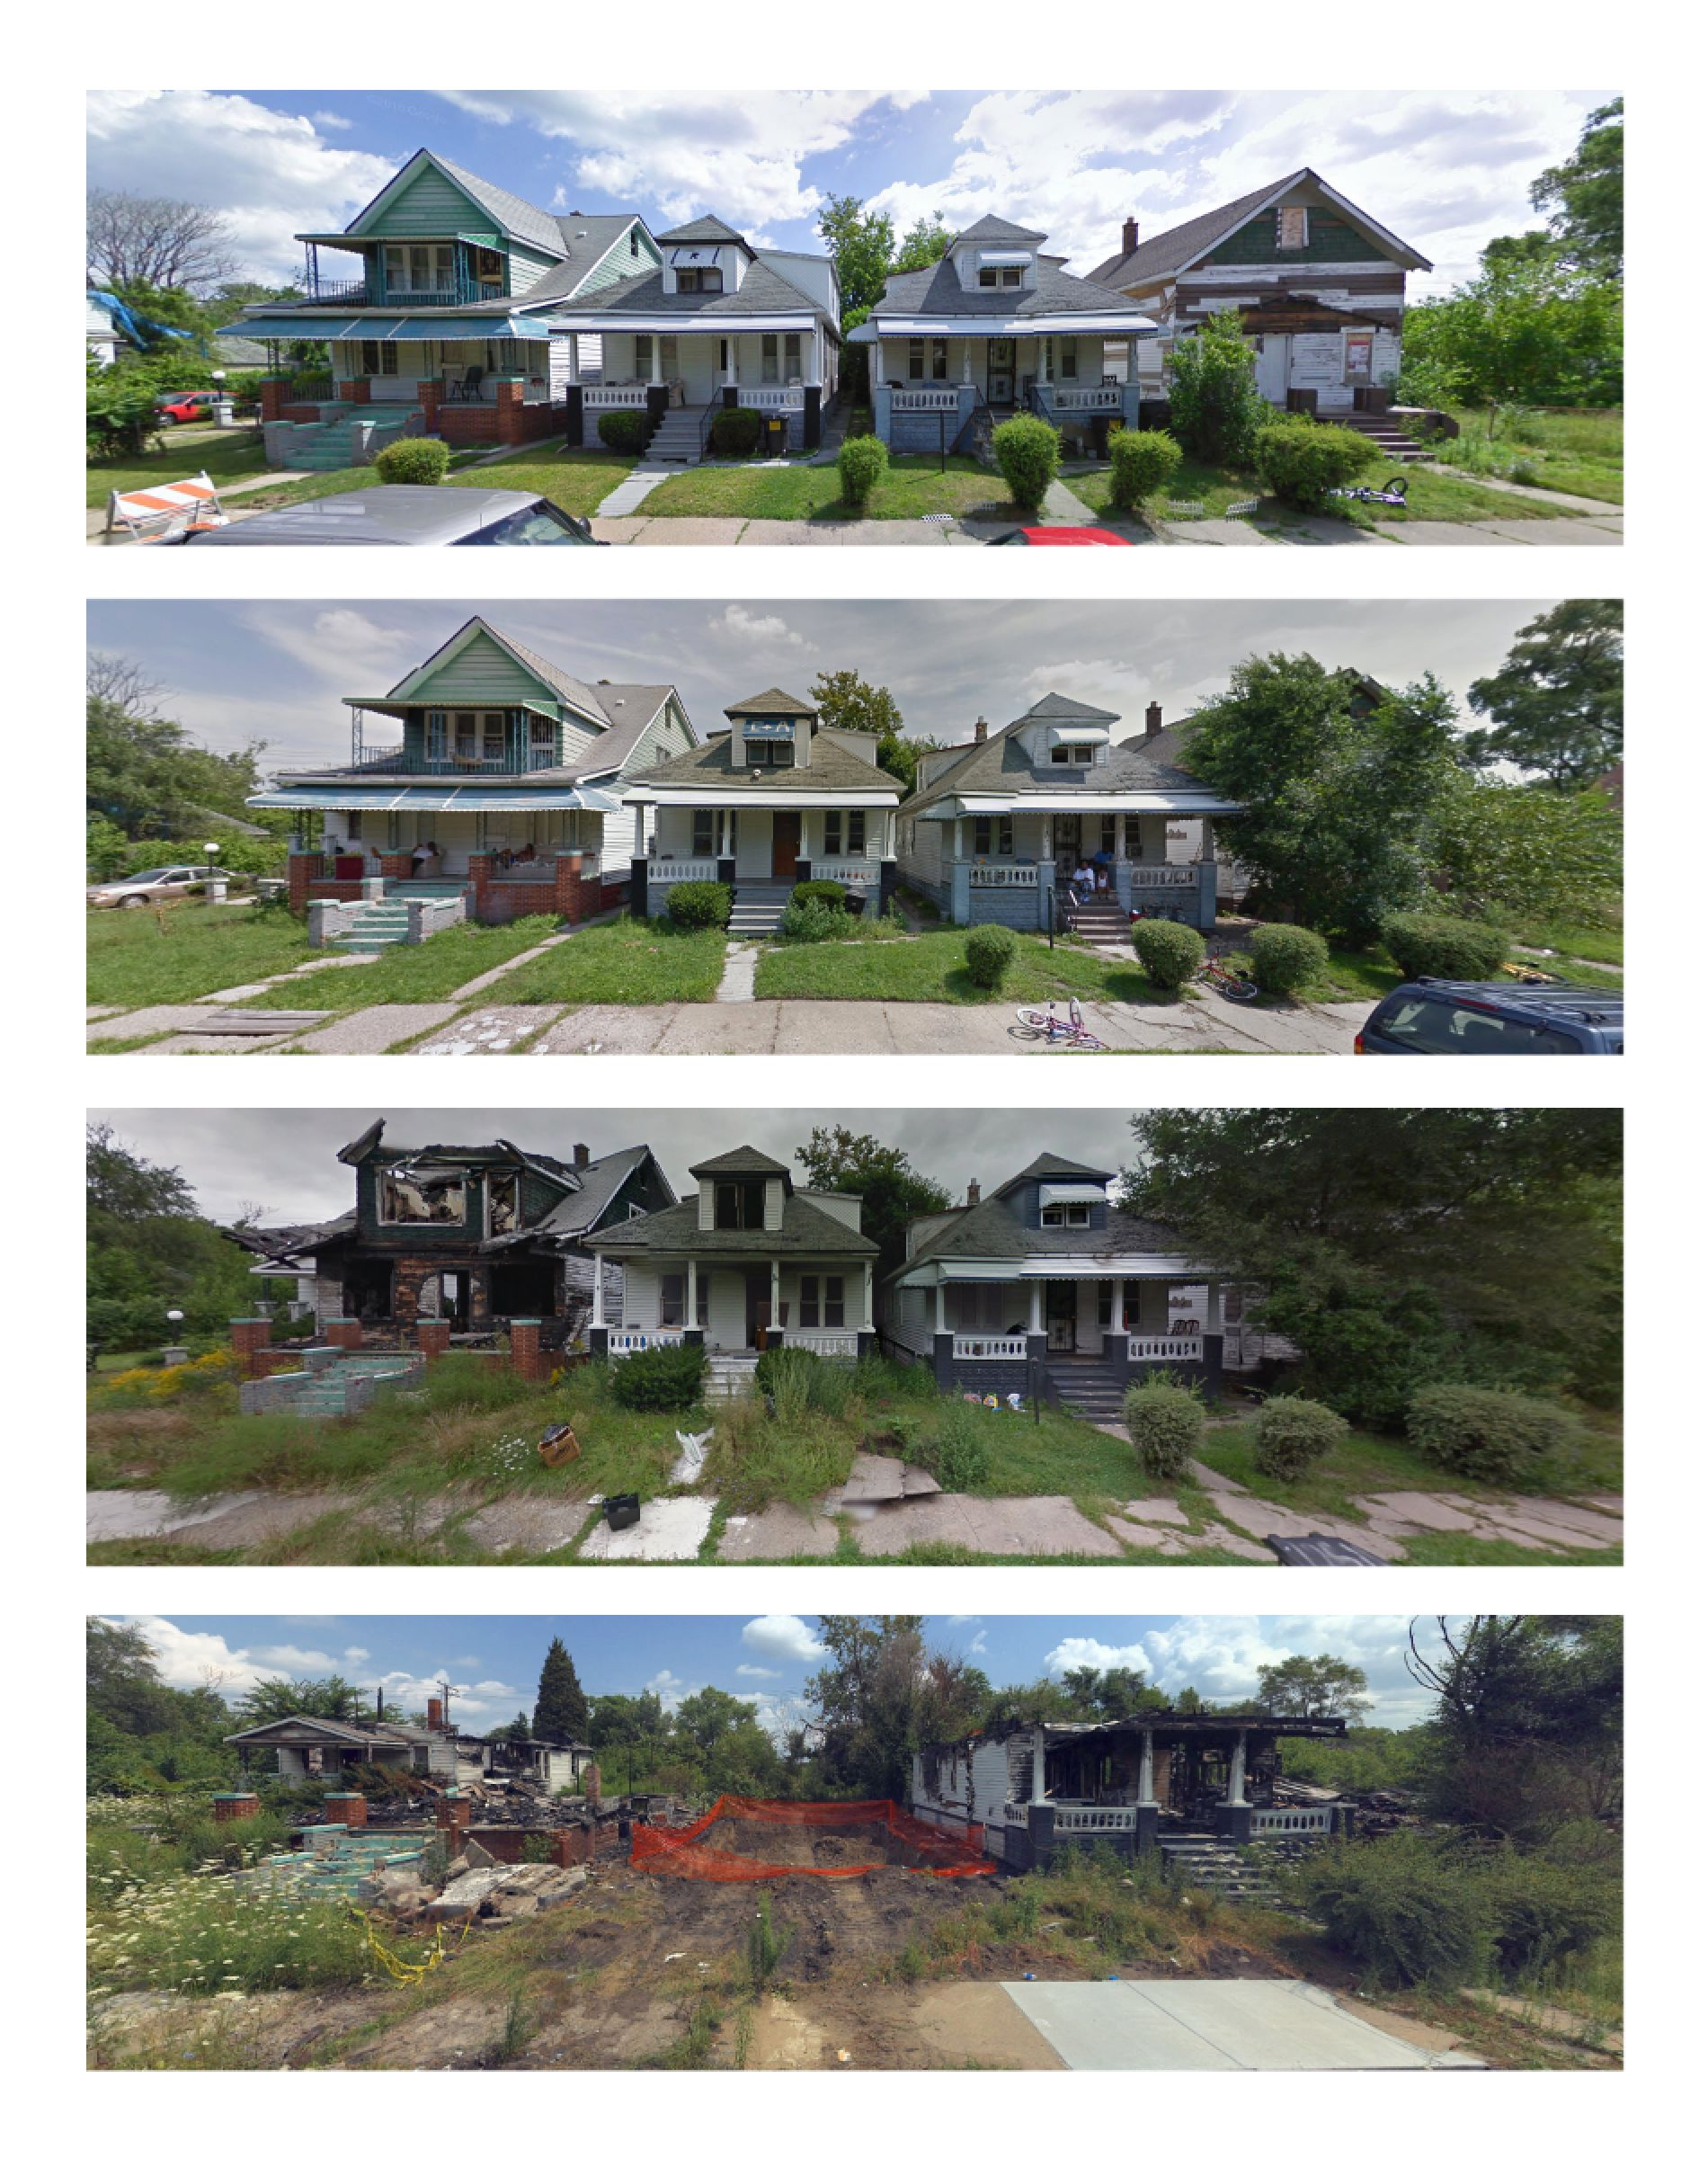 This Mackay Street properties are shown in Google and Bing images from July 2009, August 2011, September 2013 and August 2014.